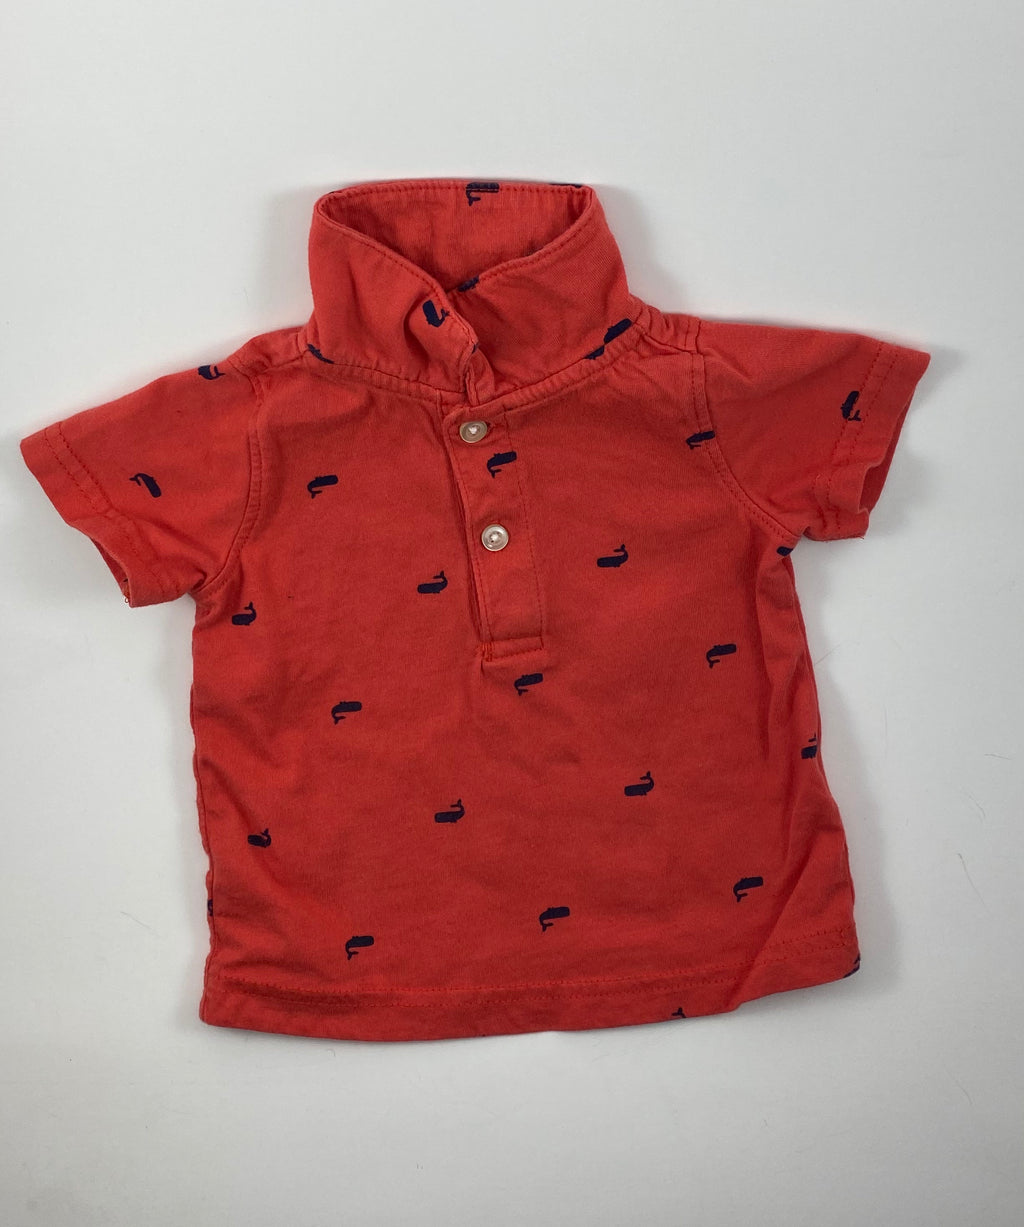 Boy's Short Sleeve Shirt - Size 3-6mo